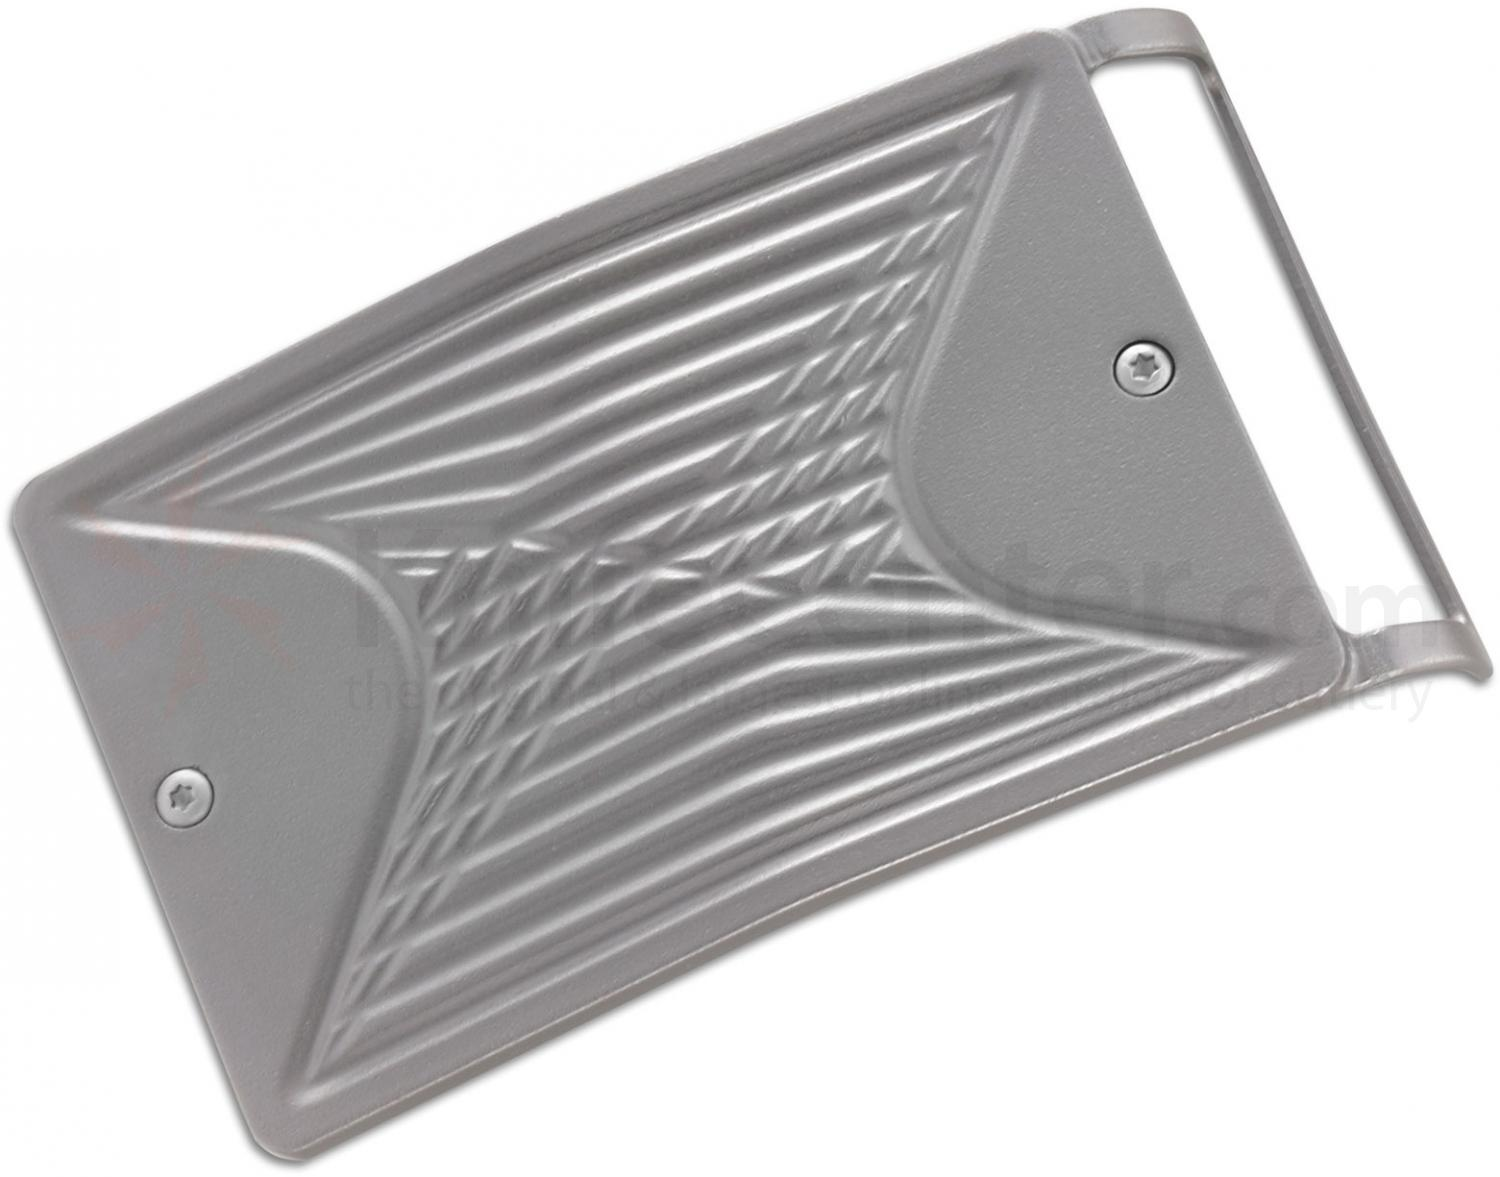 Columbia River 5270BELT Tighe Coon Belt Buckle, Aluminum